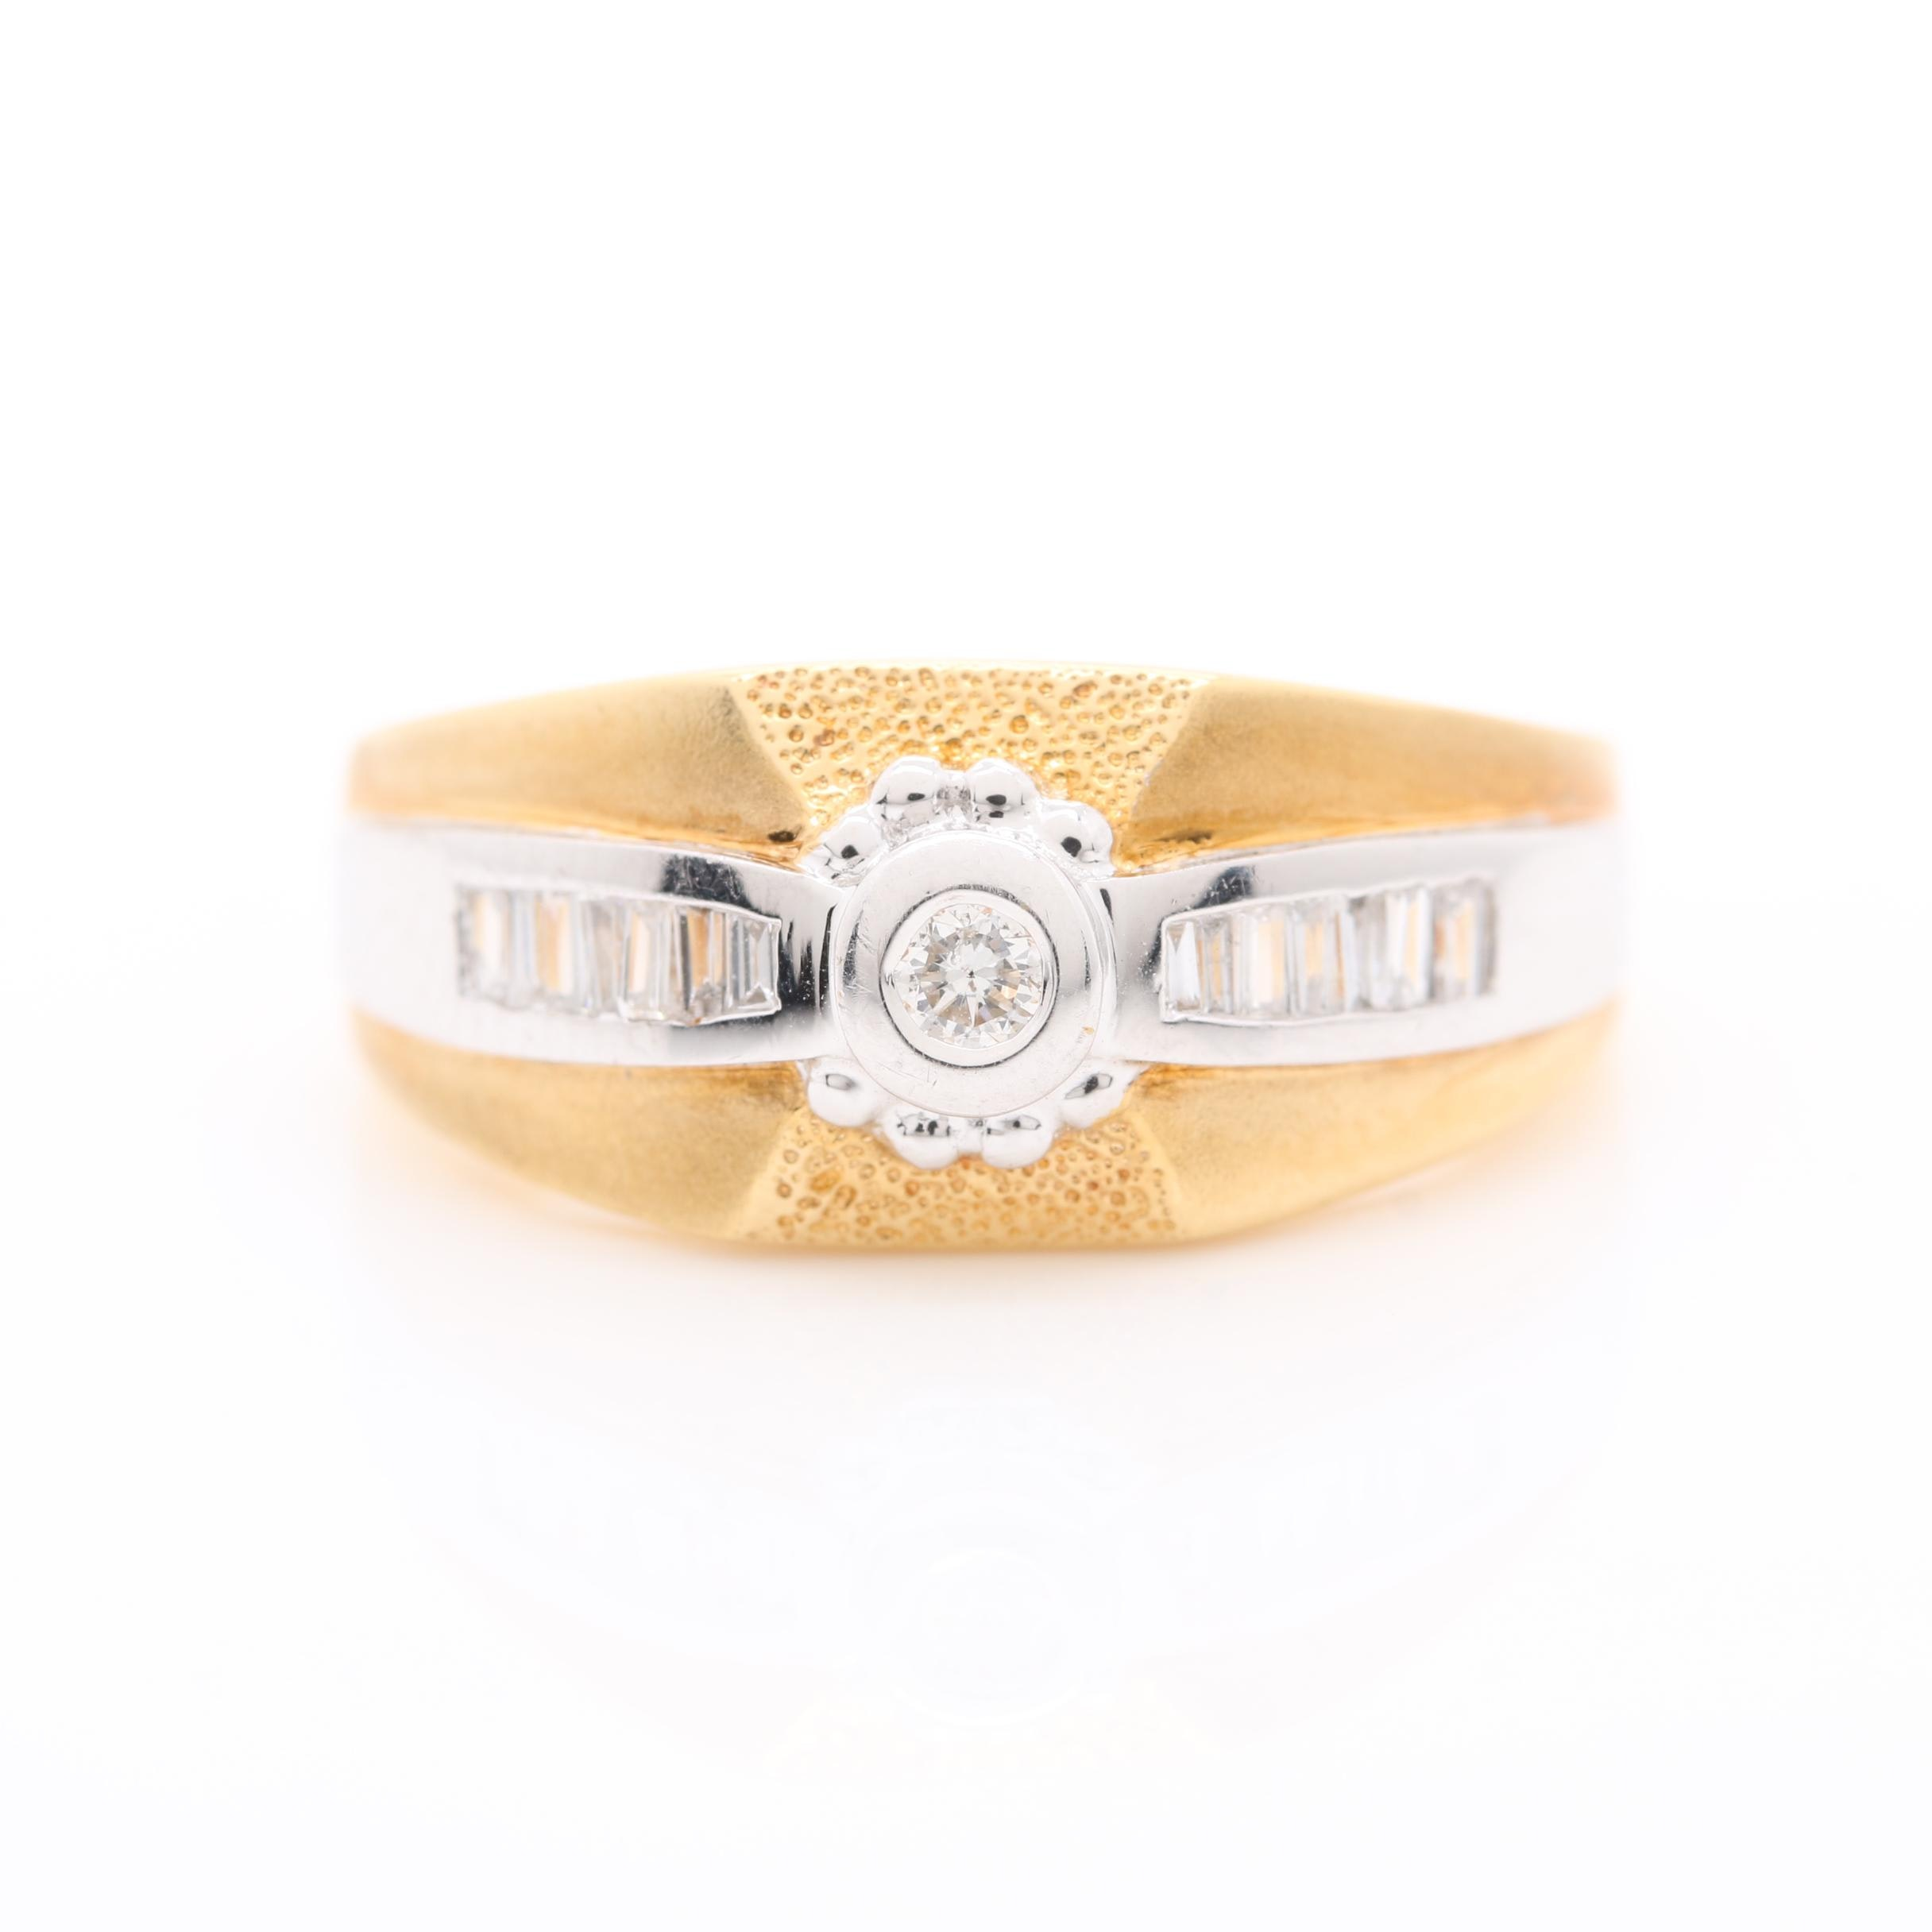 18K Yellow Gold and White Gold Diamond Ring